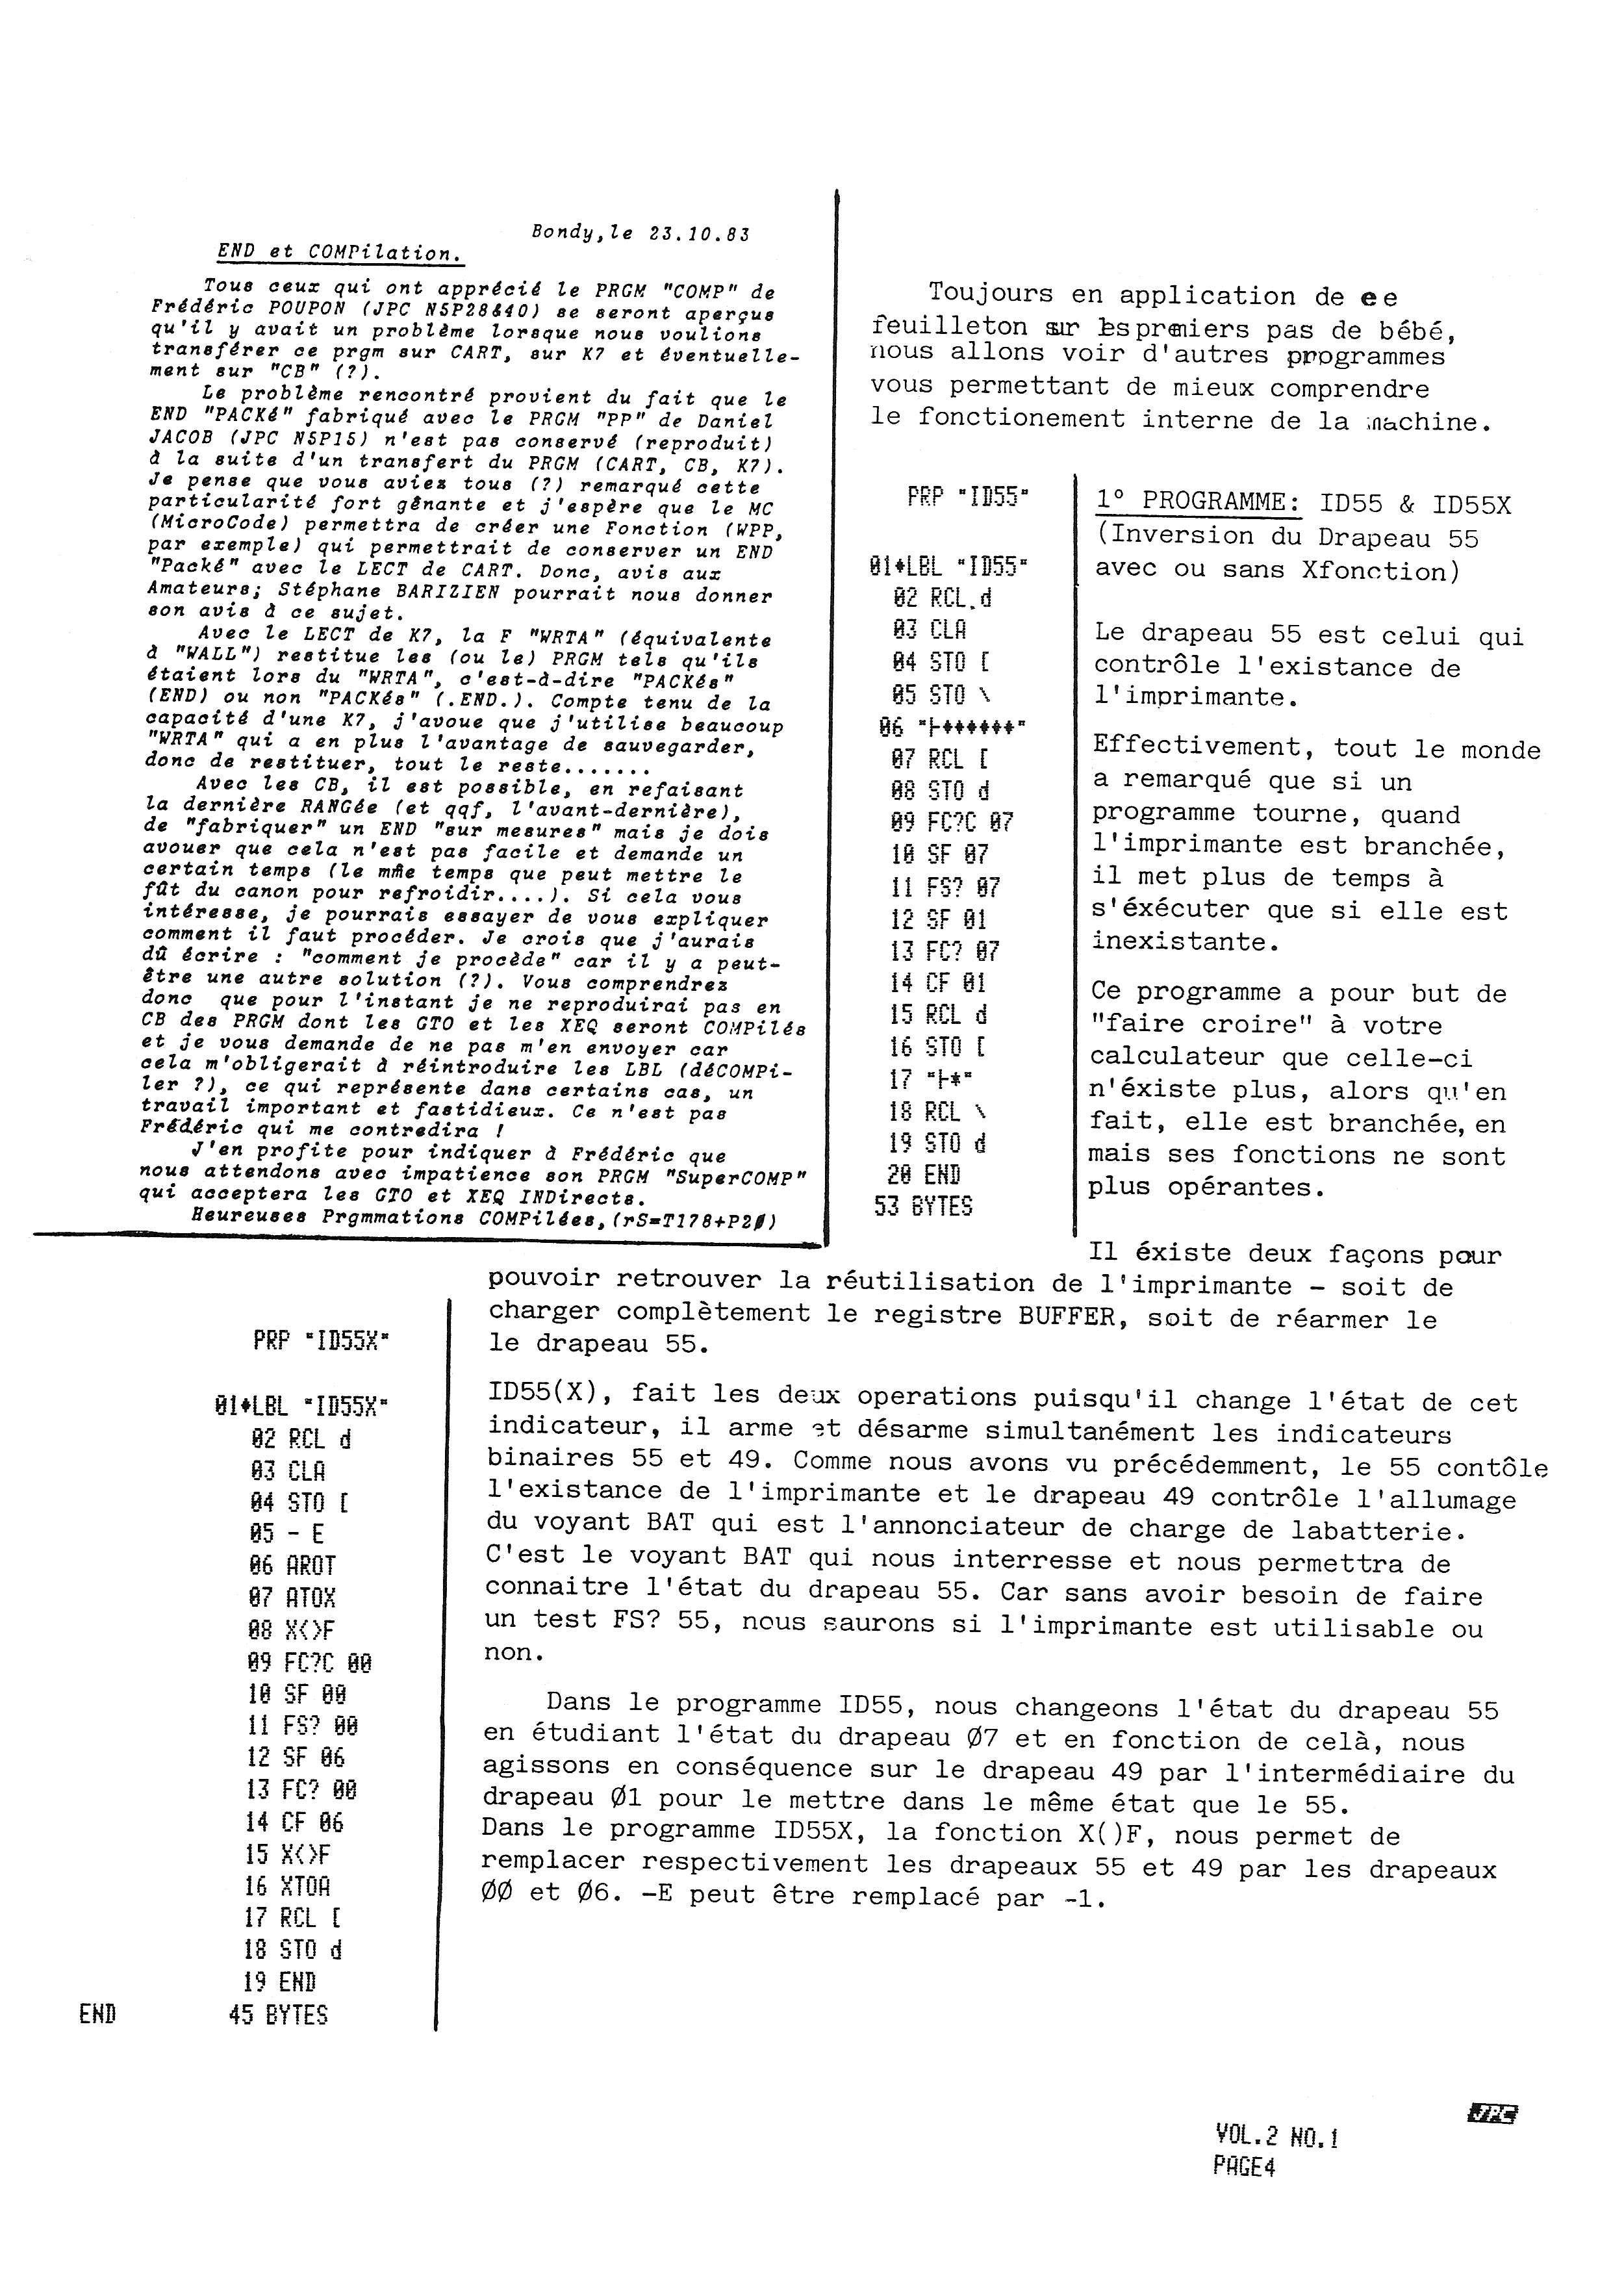 Jp-11-page-5-1000